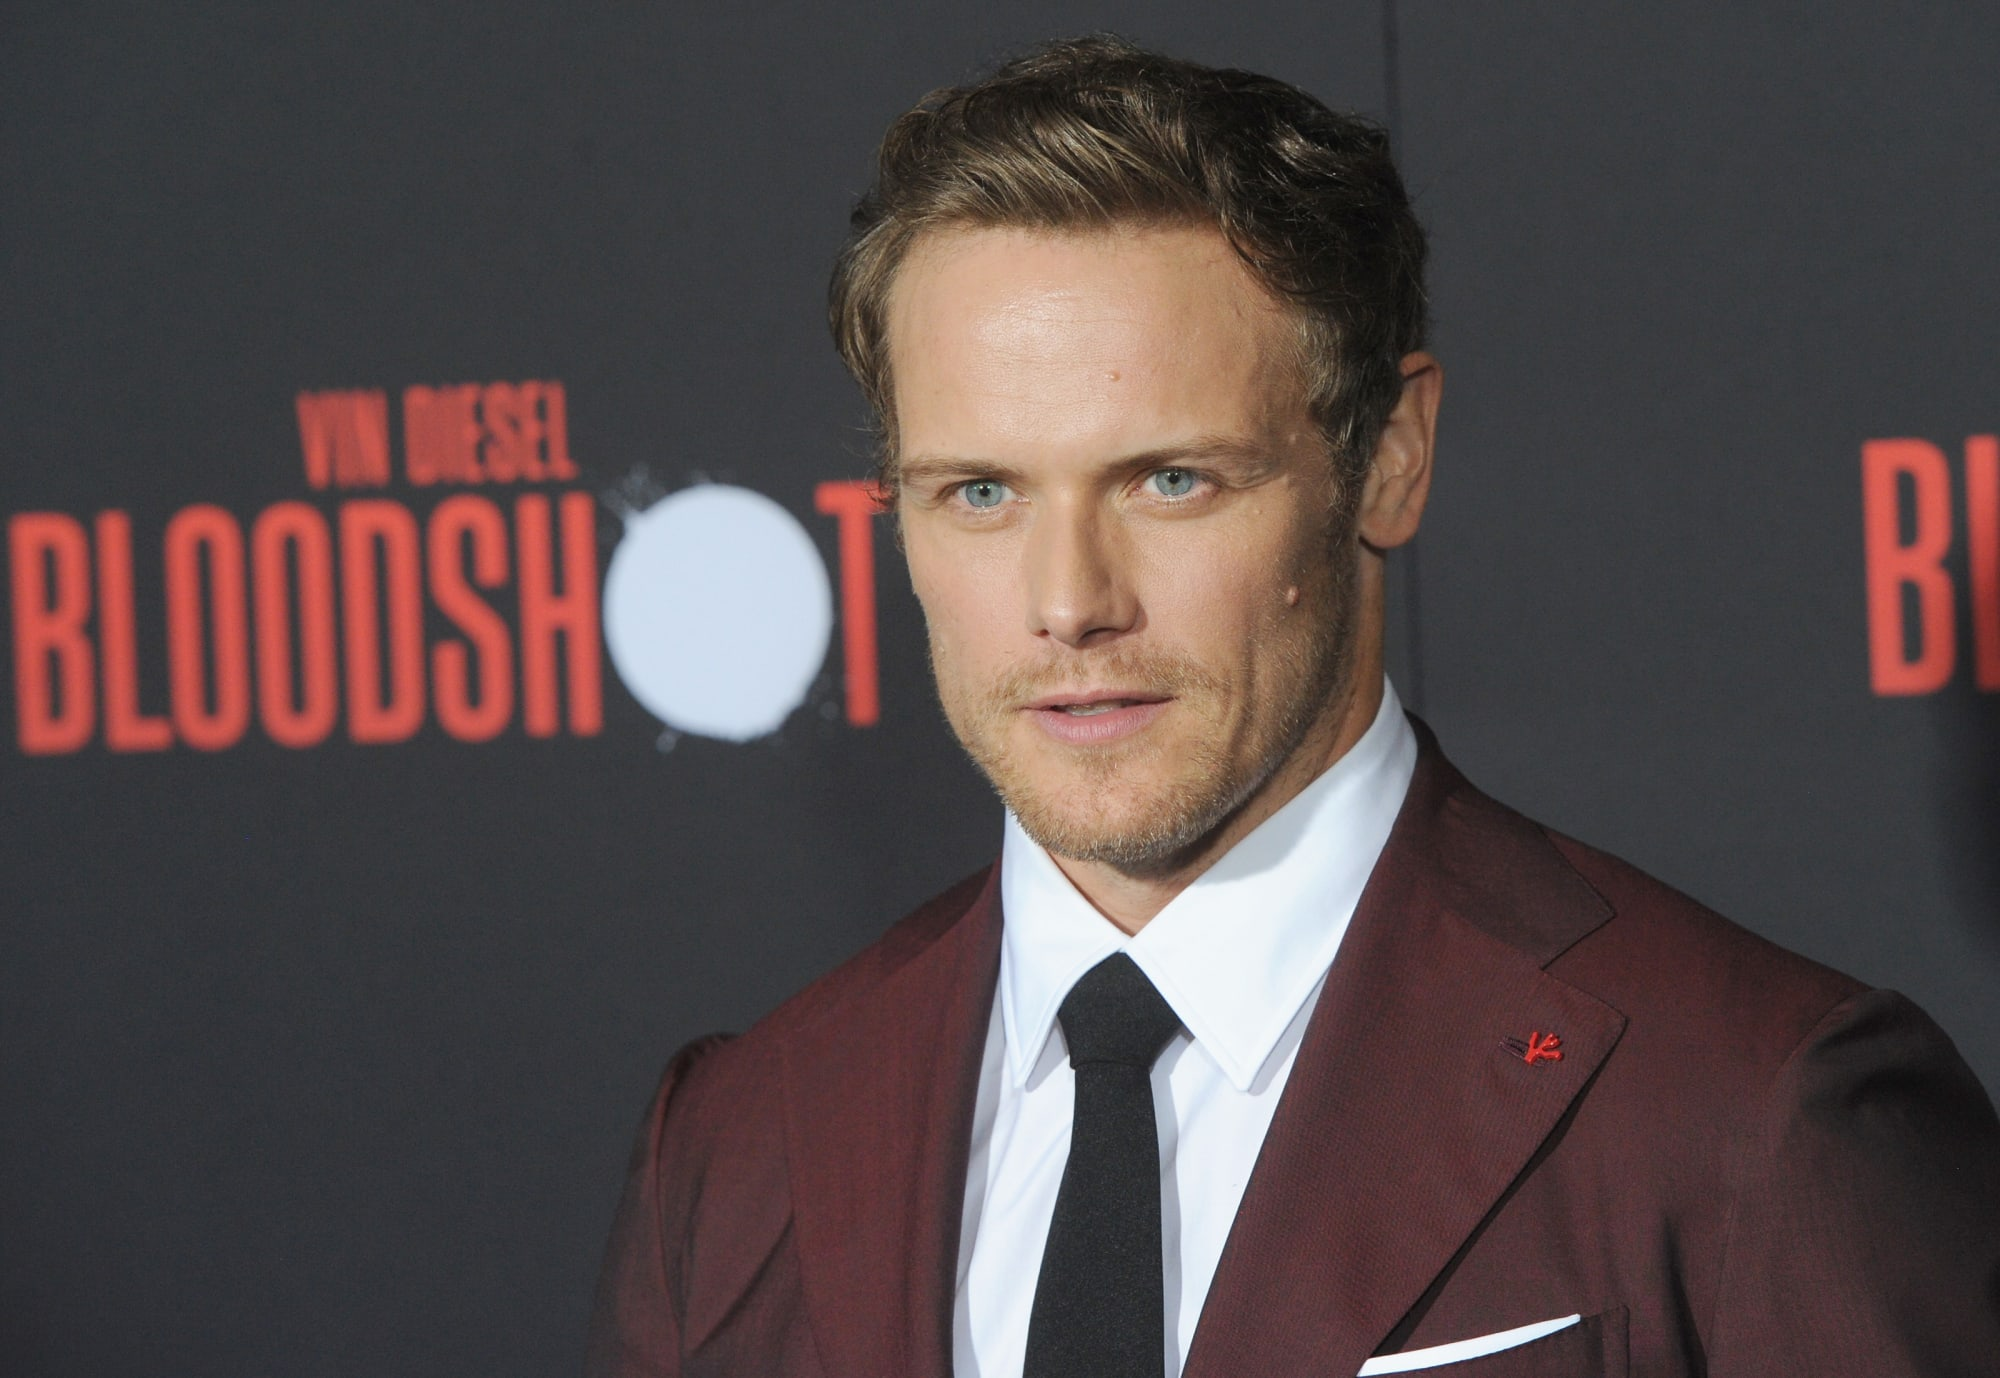 Sam Heughan thinks now is the right time for him to play James Bond